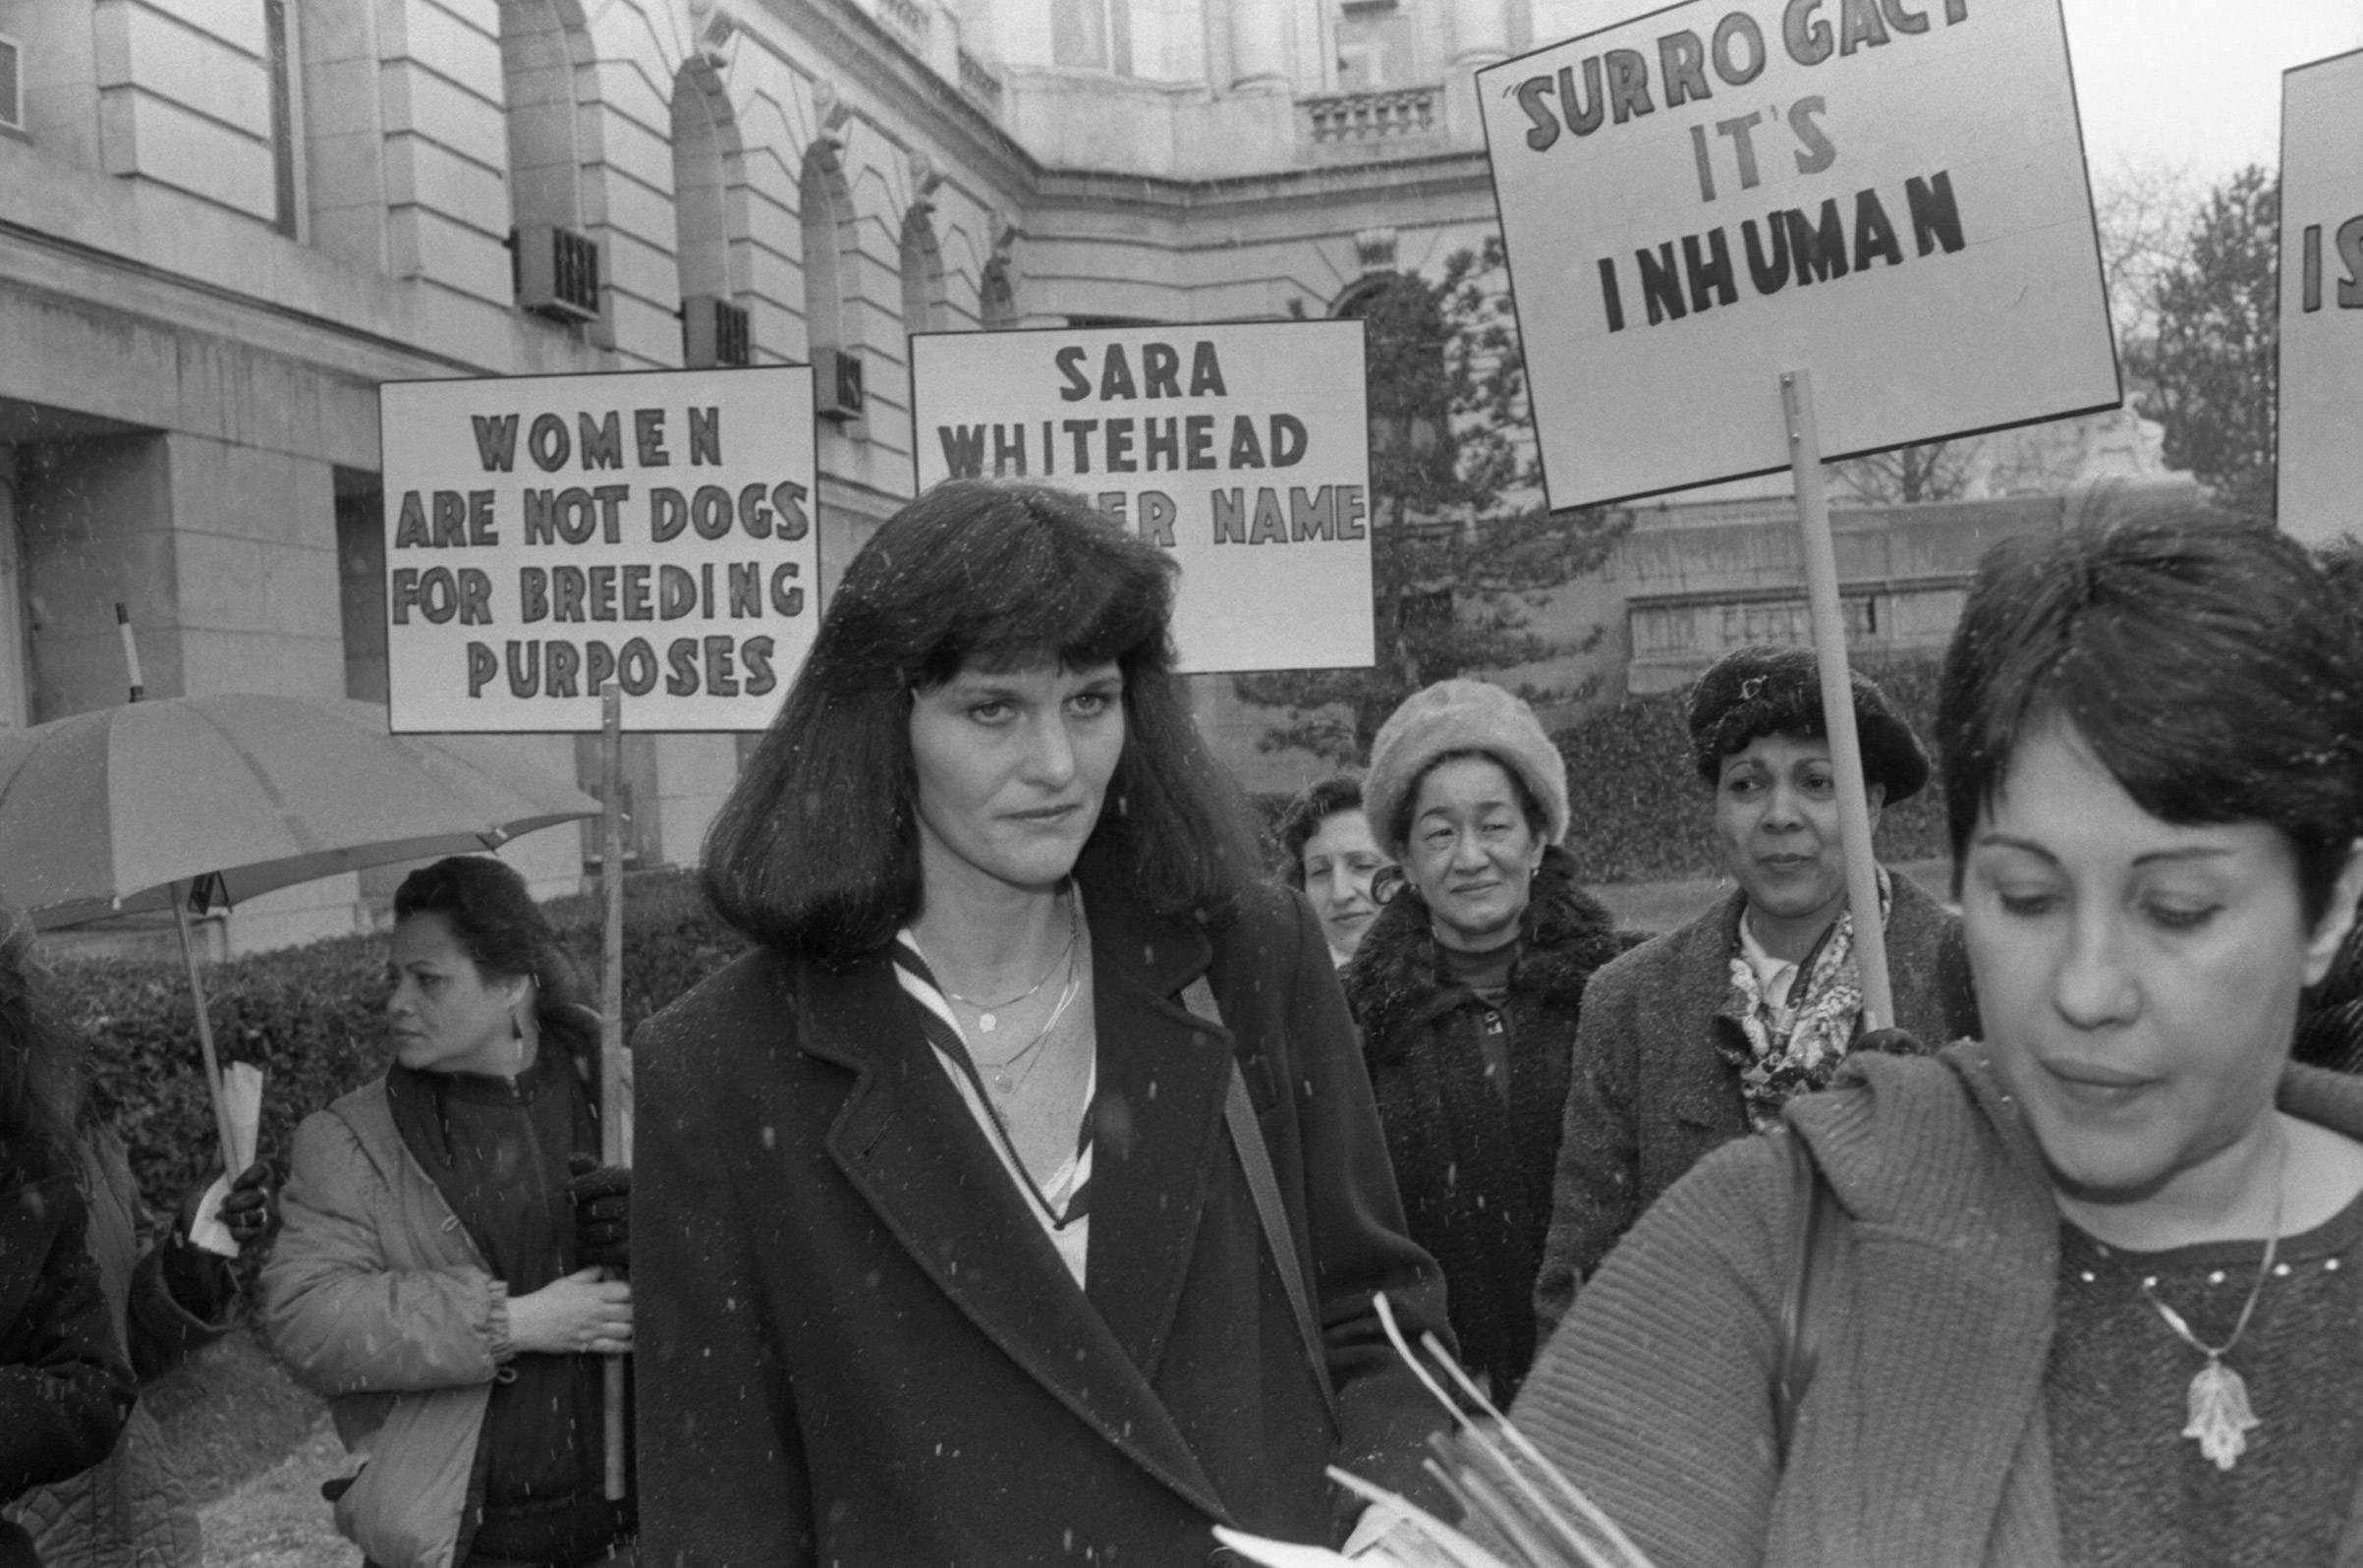 Surrogate mother Mary Beth Whitehead joins a group of women demonstrating on her behalf outside Bergen County courthouse on March 12, 1987, after the lawyers in the  Baby M  custody case delivered their summations.